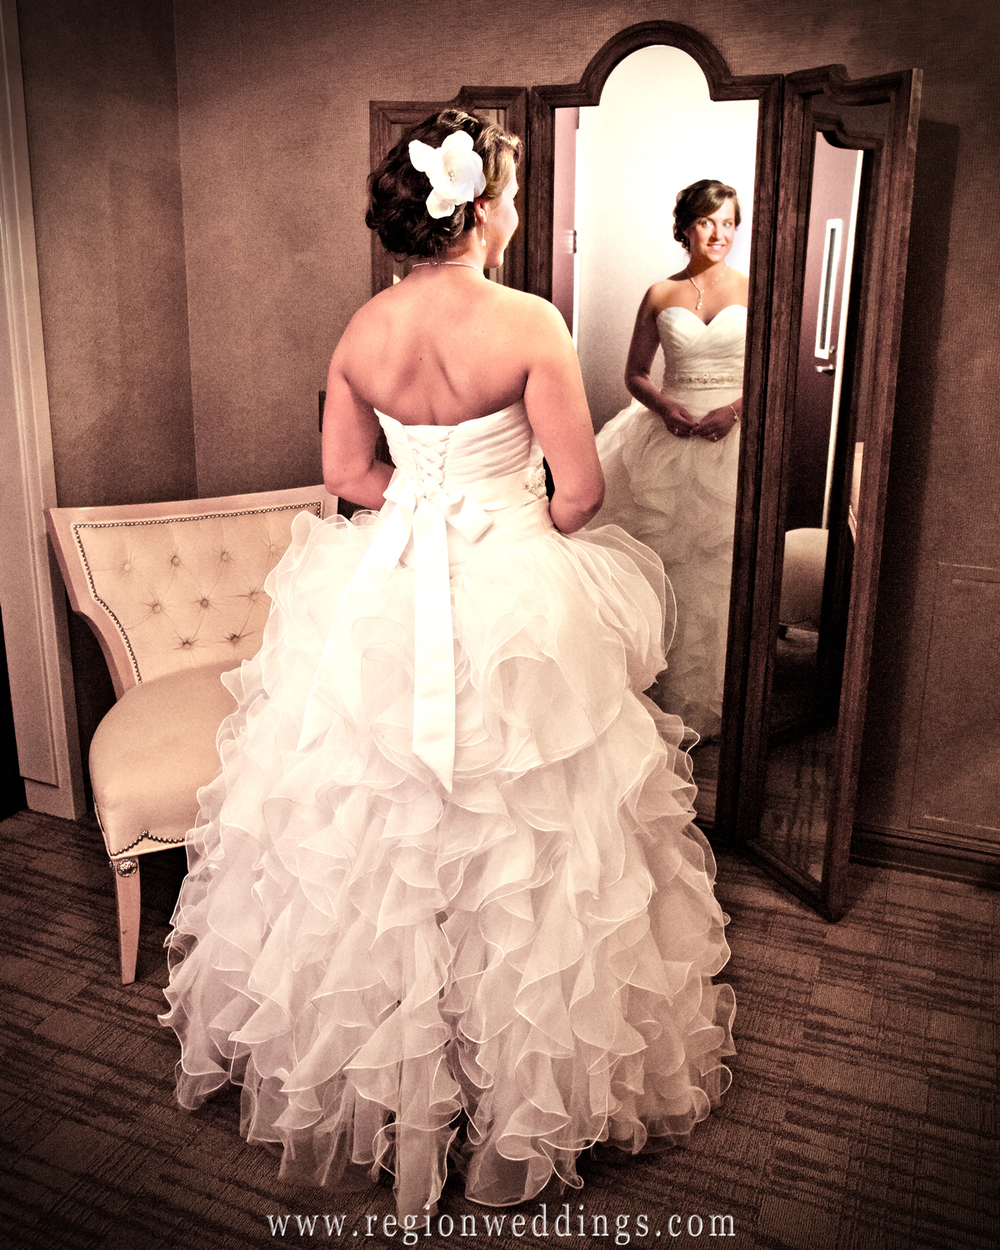 A bride poses for her wedding photo in a vintage mirror inside the bridal suite at the Center for Performing Arts in Munster, Indiana.